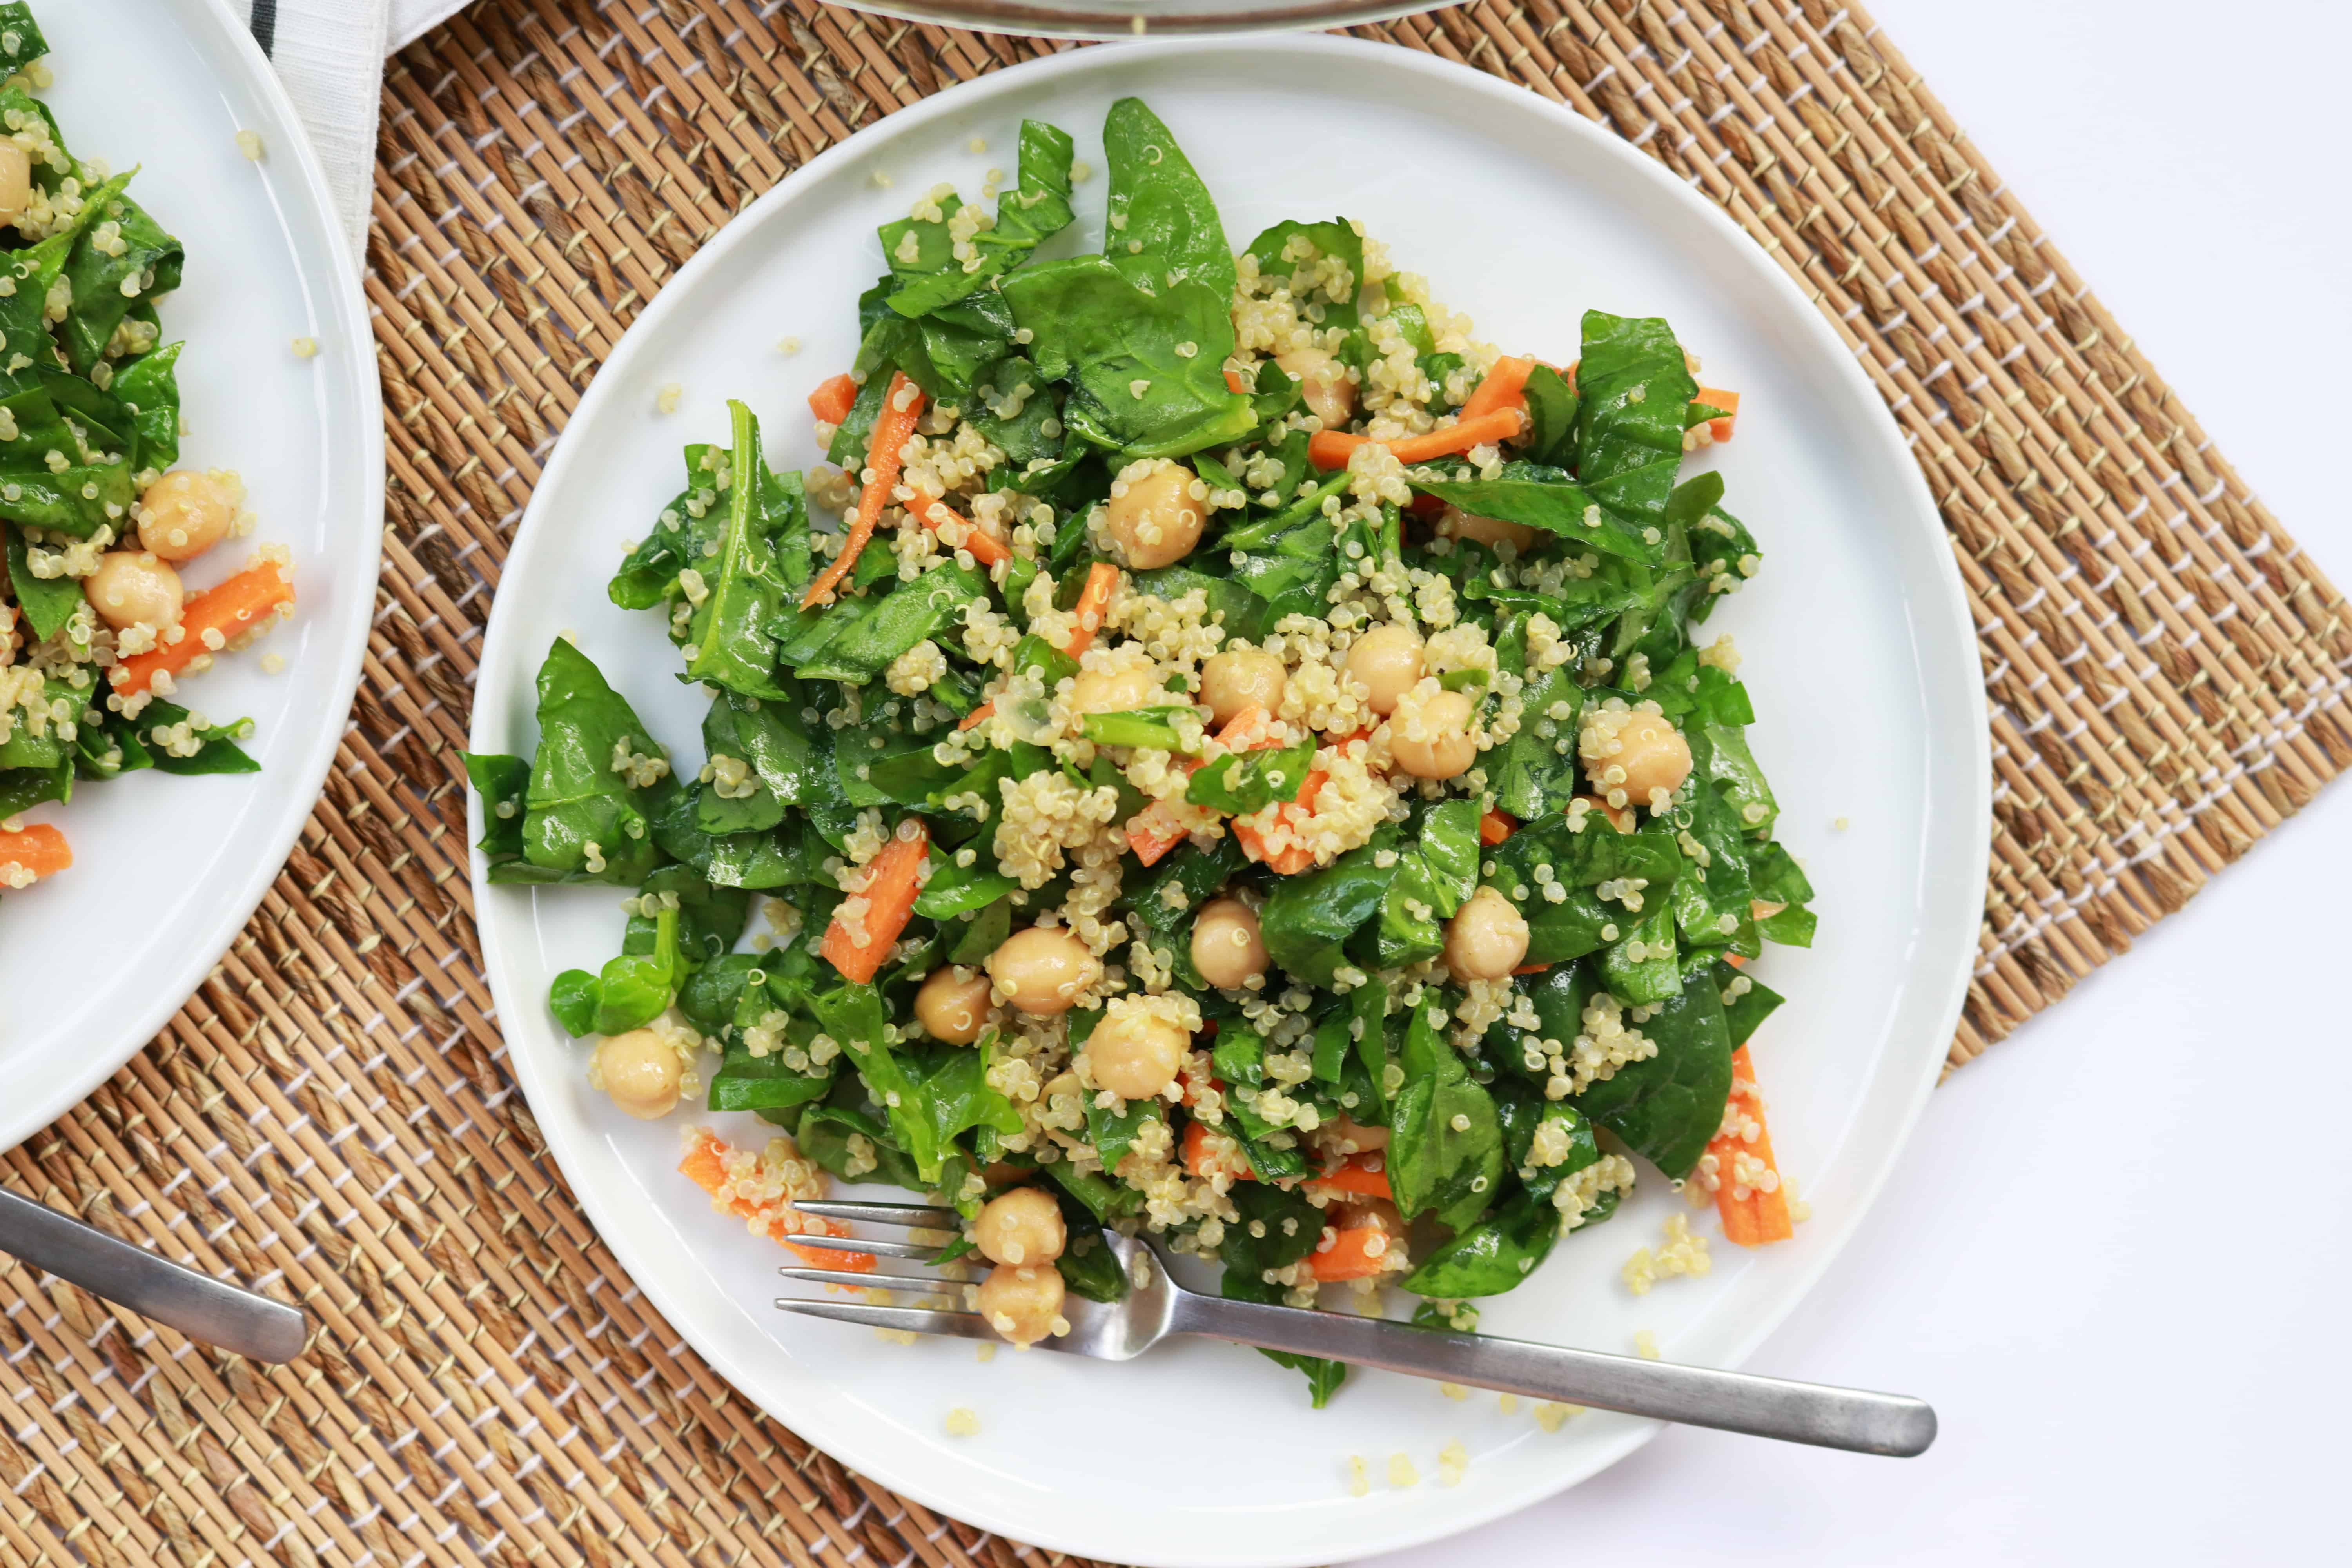 quinoa, quinoa salad, protein packed quinoa salad #healthy #healthycooking #healthylunch #lunchideas lunch ideas, lunches, summer, summer lunches, summer cooking,